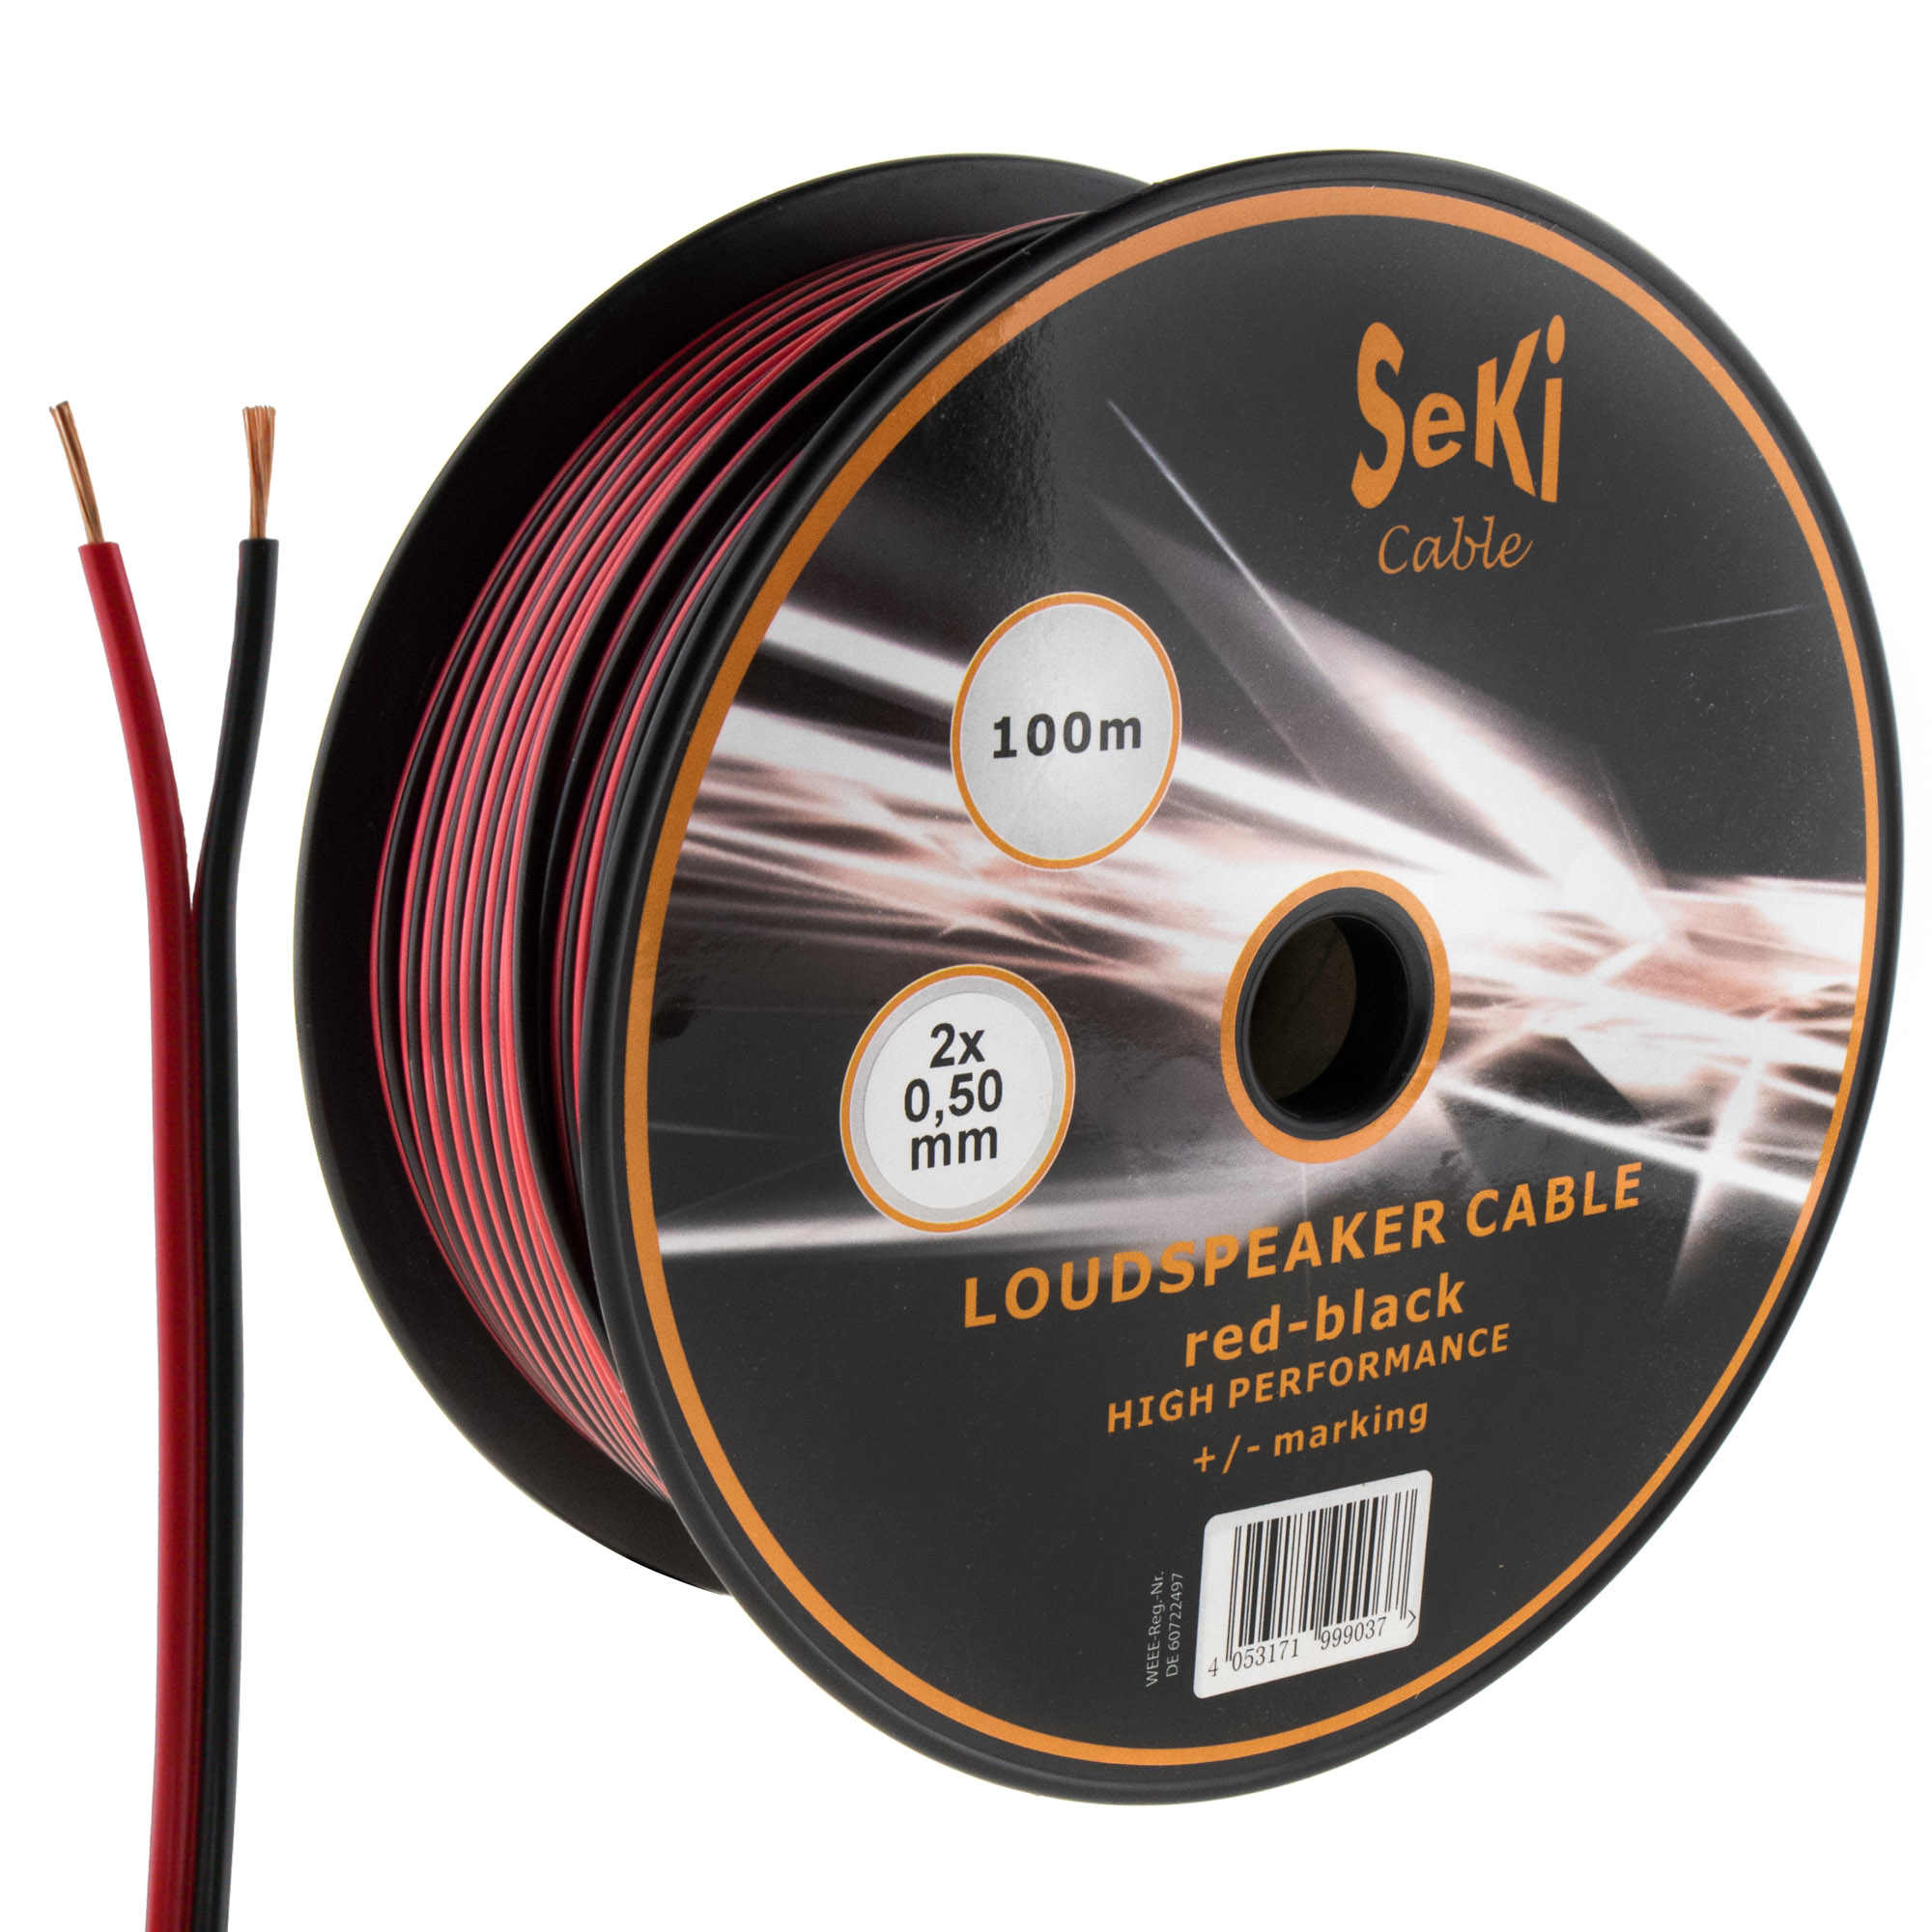 Loudspeaker cable red-black 100m 0.50mm